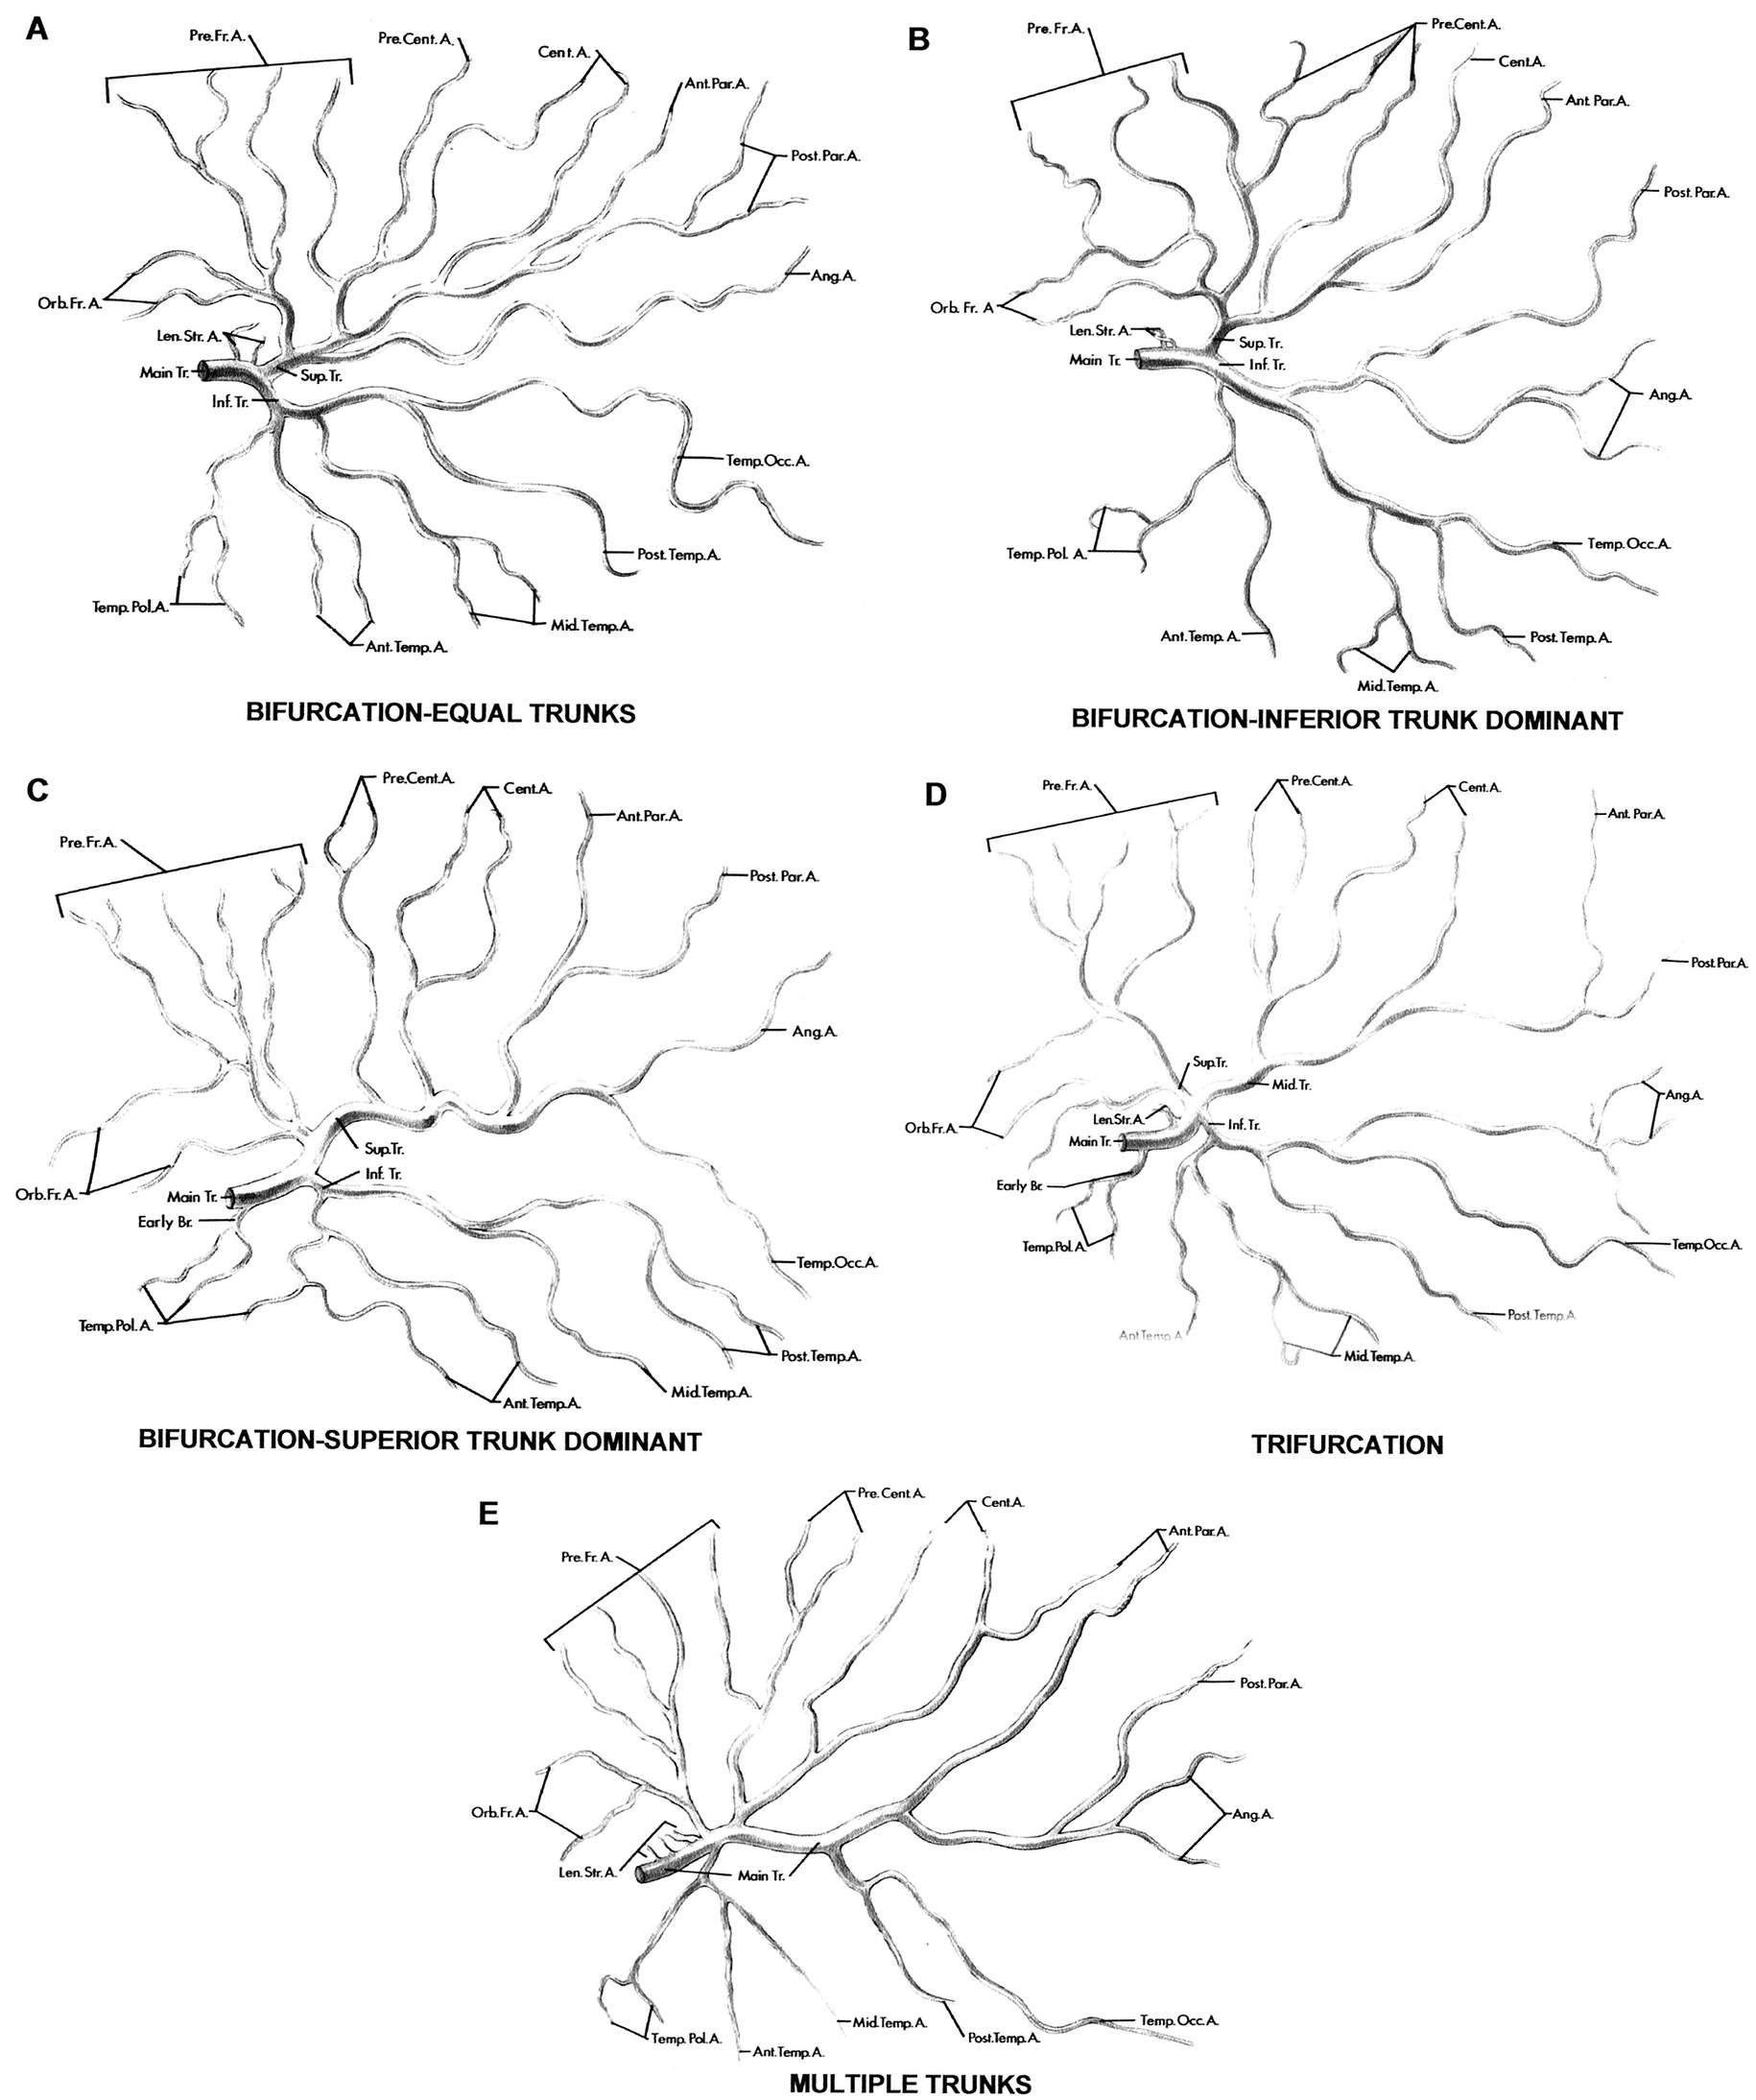 FIGURE 2.19. Branching patterns of the middle cerebral artery. These drawings of MCAs dissected from five cerebral hemispheres show the different branching patterns of the main trunk. The main trunk divides in a bifurcation in 78% of hemispheres, in a trifurcation in 12%, and in a multiple branch pattern (four or more trunks) in 10%. The drawings show the main, superior, middle, and inferior trunks. These trunks give rise to the lenticulostriate, orbitofrontal, prefrontal, precentral, central, anterior parietal, posterior parietal, angular, temporo-occipital, posterior temporal, middle temporal, anterior temporal, and temporopolar arteries. A, bifurcation: equal trunks (18% of hemispheres). The main trunk divides into superior and inferior trunks that are of approximately the same diameter and supply cortical areas of similar size. The superior trunk gives rise to the orbitofrontal arteries through the angular arteries, and the inferior trunk gives rise to the temporopolar through the temporo-occipital arteries. B, bifurcation: inferior trunk dominant (32% of hemispheres). The inferior trunk has a larger diameter and area of supply than the superior trunk. The superior trunk supplies the orbitofrontal through the anterior parietal areas, and the inferior trunk supplies the posterior parietal through the temporopolar areas. C, bifurcation: superior trunk dominant (28% of hemispheres). The superior trunk has a larger diameter and area of supply than the inferior trunk. It supplies the orbitofrontal through the temporo-occipital areas, and the inferior trunk supplies the temporal areas except for the temporopolar area, which is supplied by an early branch (Early Br.) that arises from the main trunk. D, trifurcation pattern (12% of hemispheres). The main trunk of the MCA divides into three trunks. The superior trunk supplies the orbitofrontal and prefrontal areas, the middle trunk supplies the precentral through the posterior parietal areas, and the inferior trunk suppl